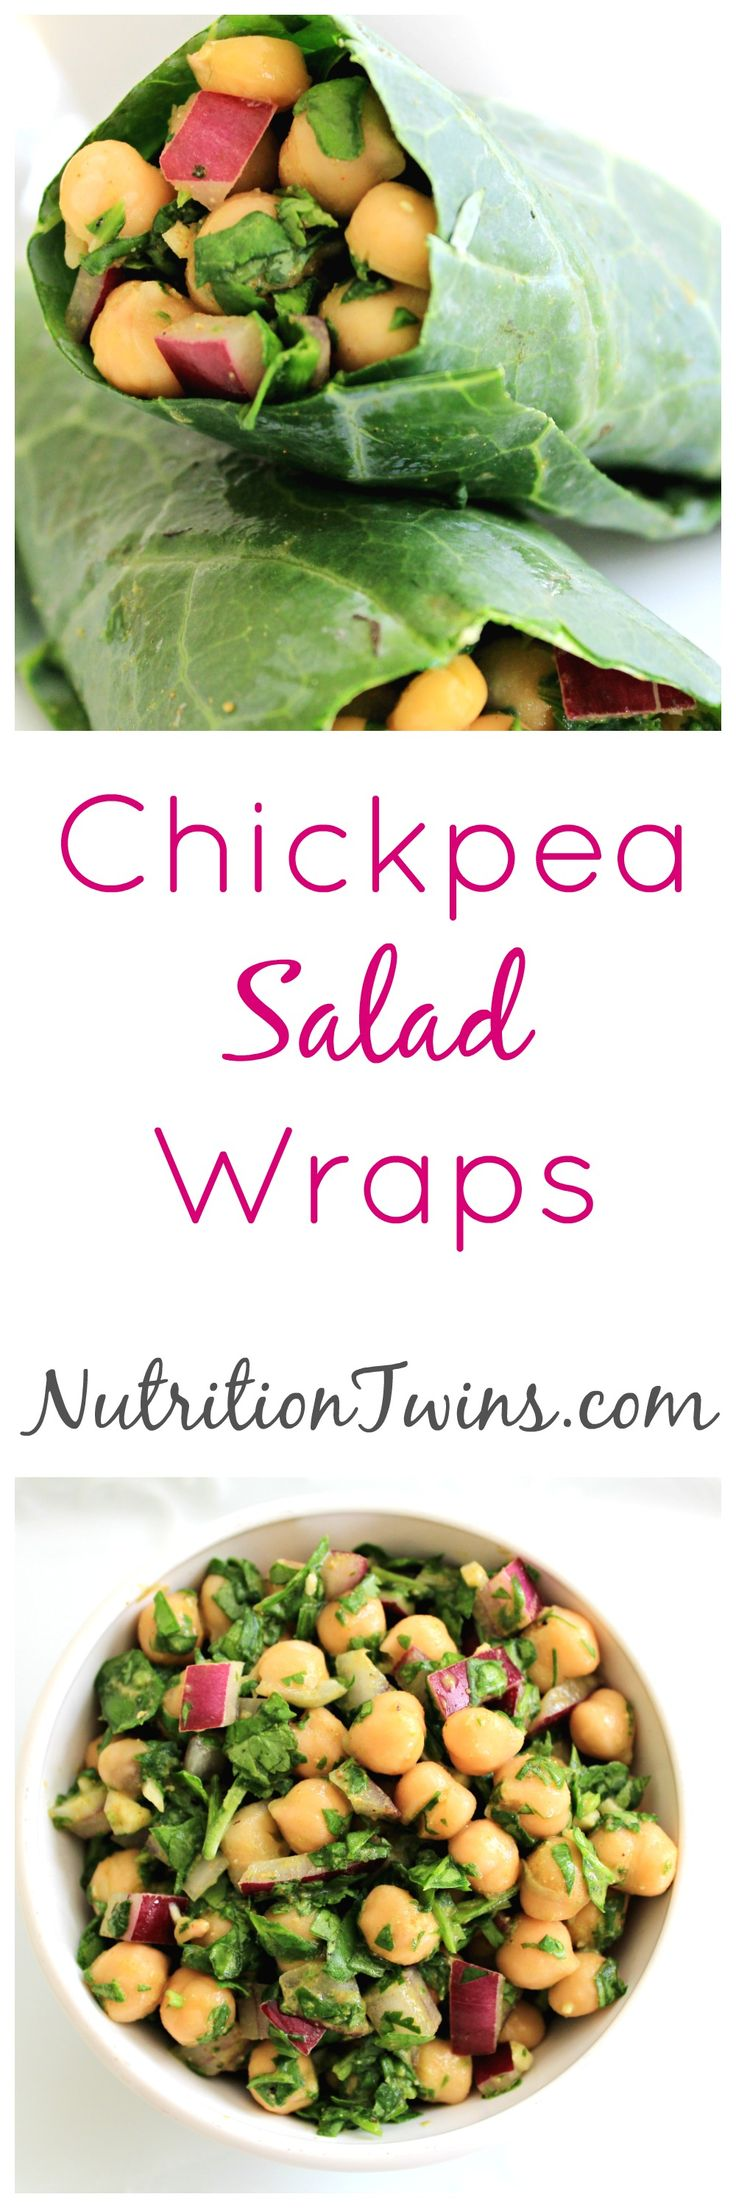 Chickpea Salad Wraps | Only 212 Calories | Great way to cut calories with healthy veggie wrap |Delicious Lunch Packed with Fiber | For Nutrition & Fitness Tips, and RECIPES please SIGN UP for our FREE NEWSLETTER www.NutritionTwins.com